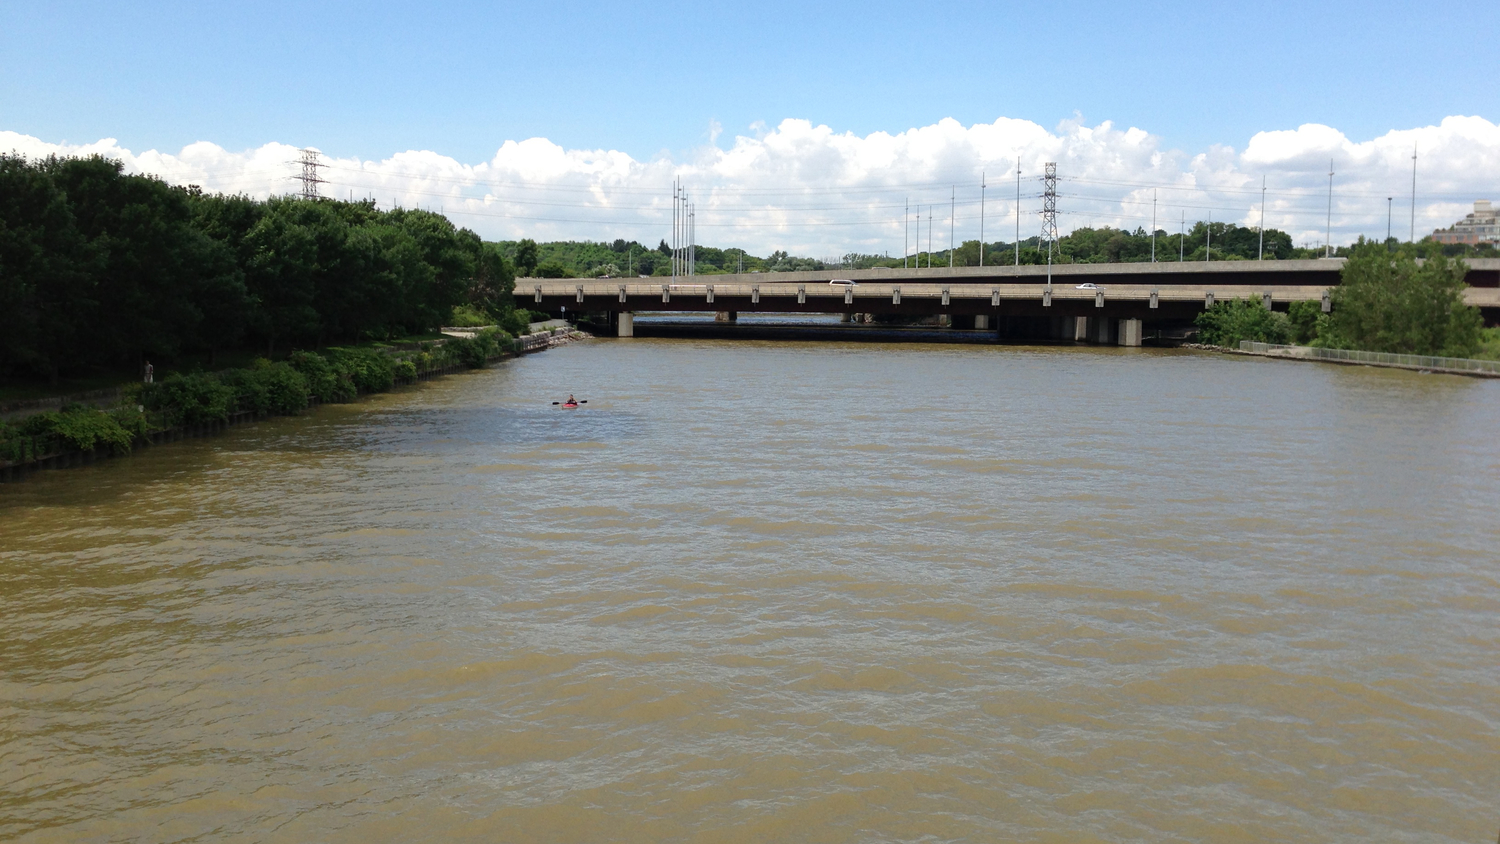 A kayaker paddles through sewage pollution on the Humber River, July 12, 2013. Photo by Lake Ontario Waterkeeper.